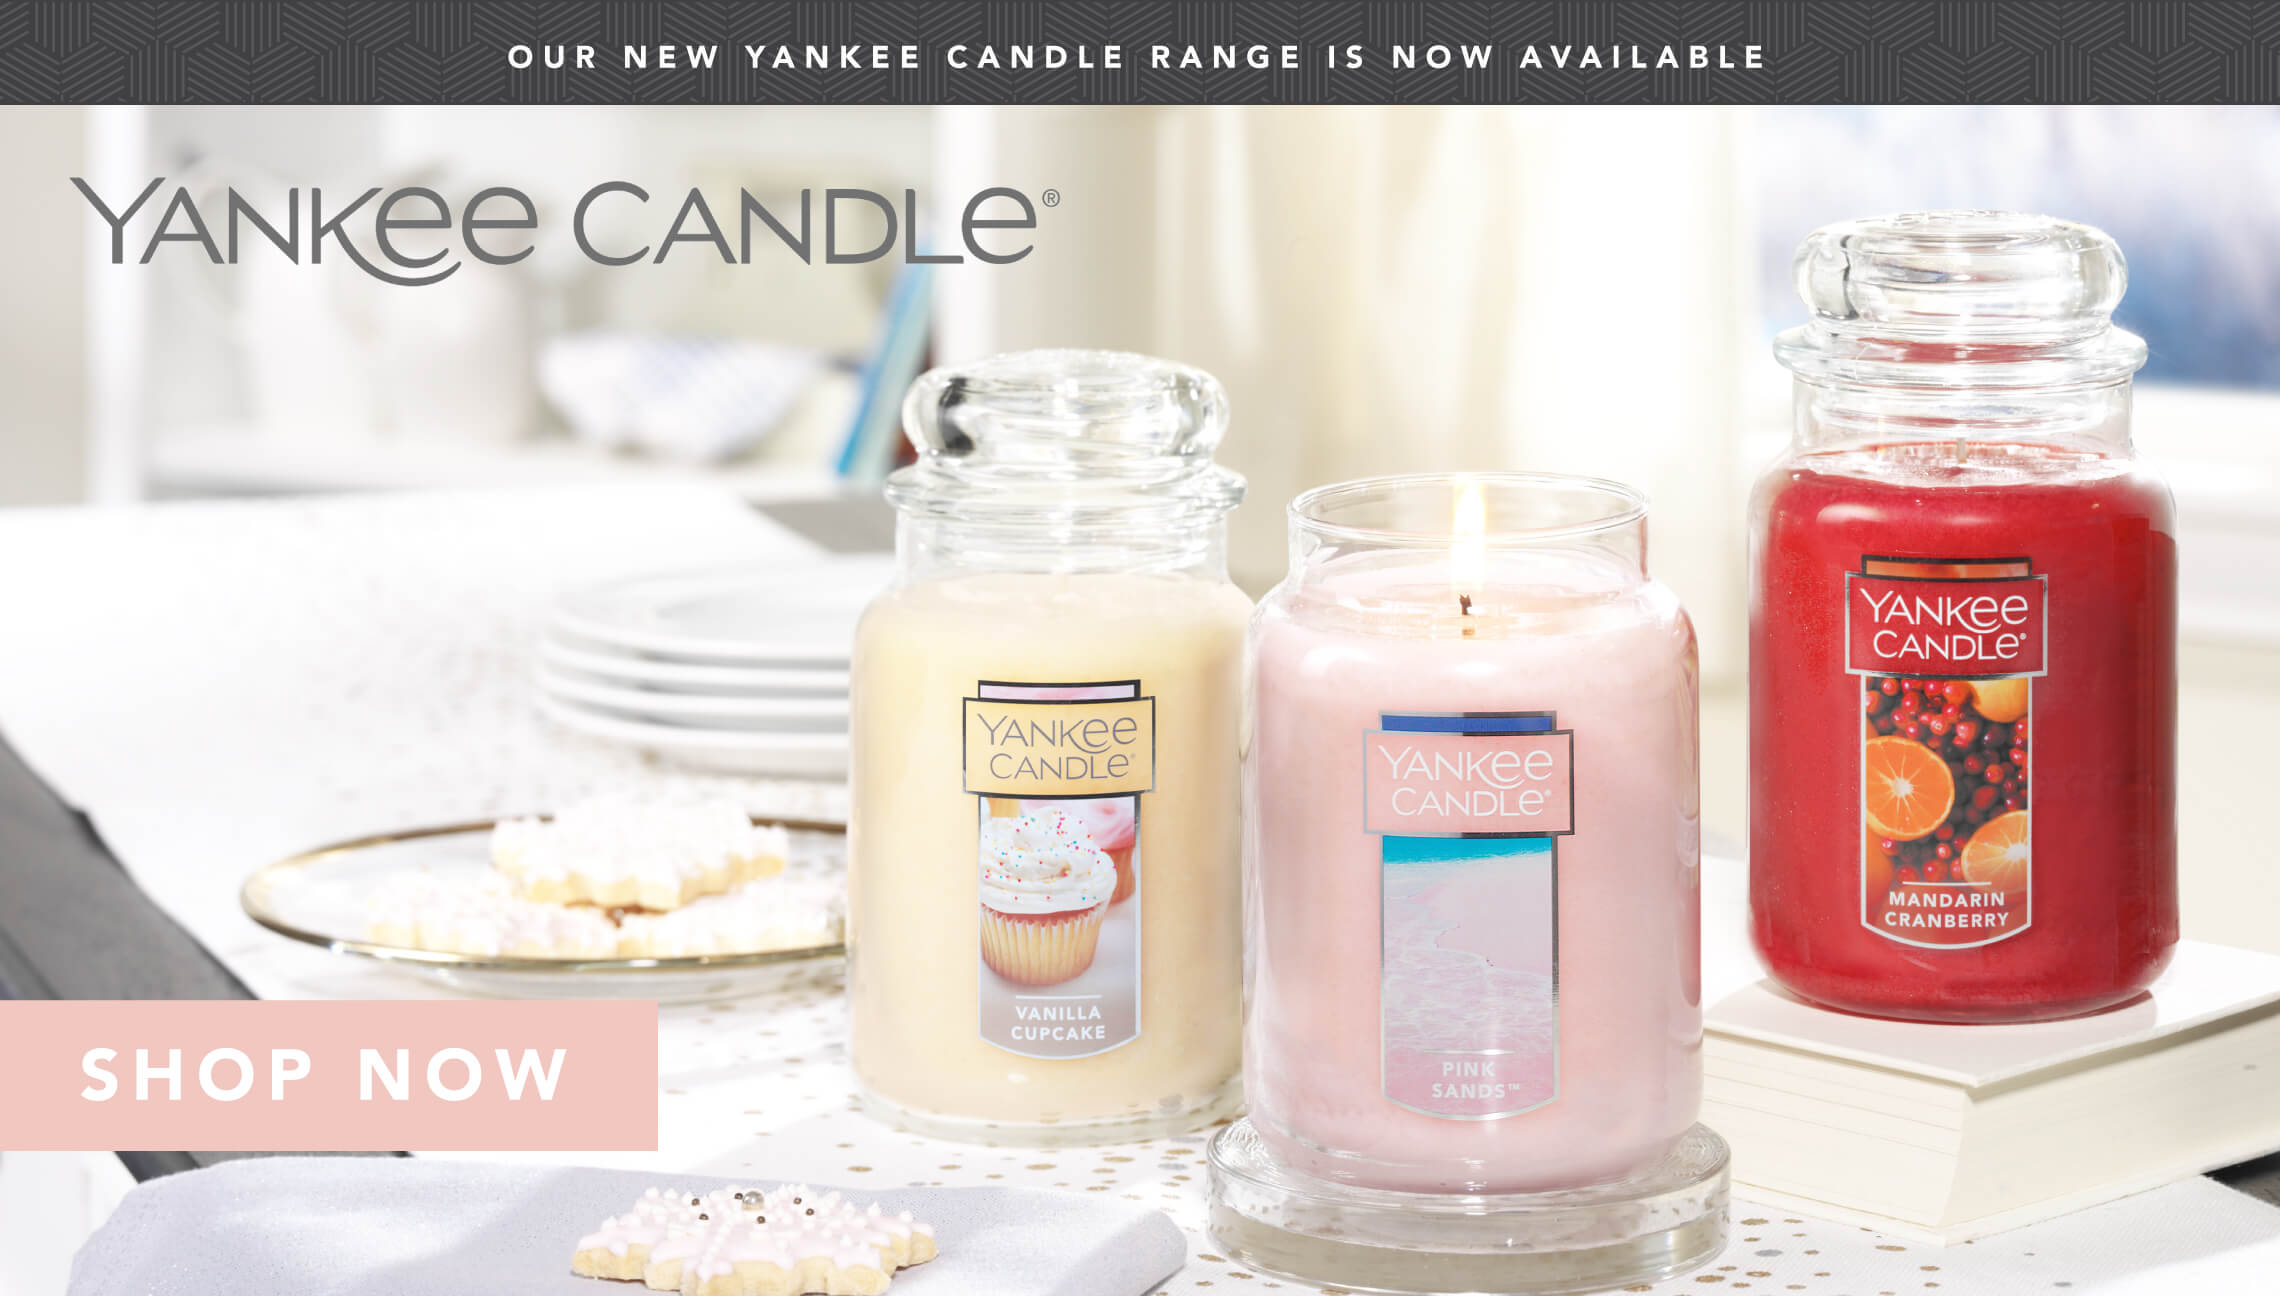 Yankee Candles now available!